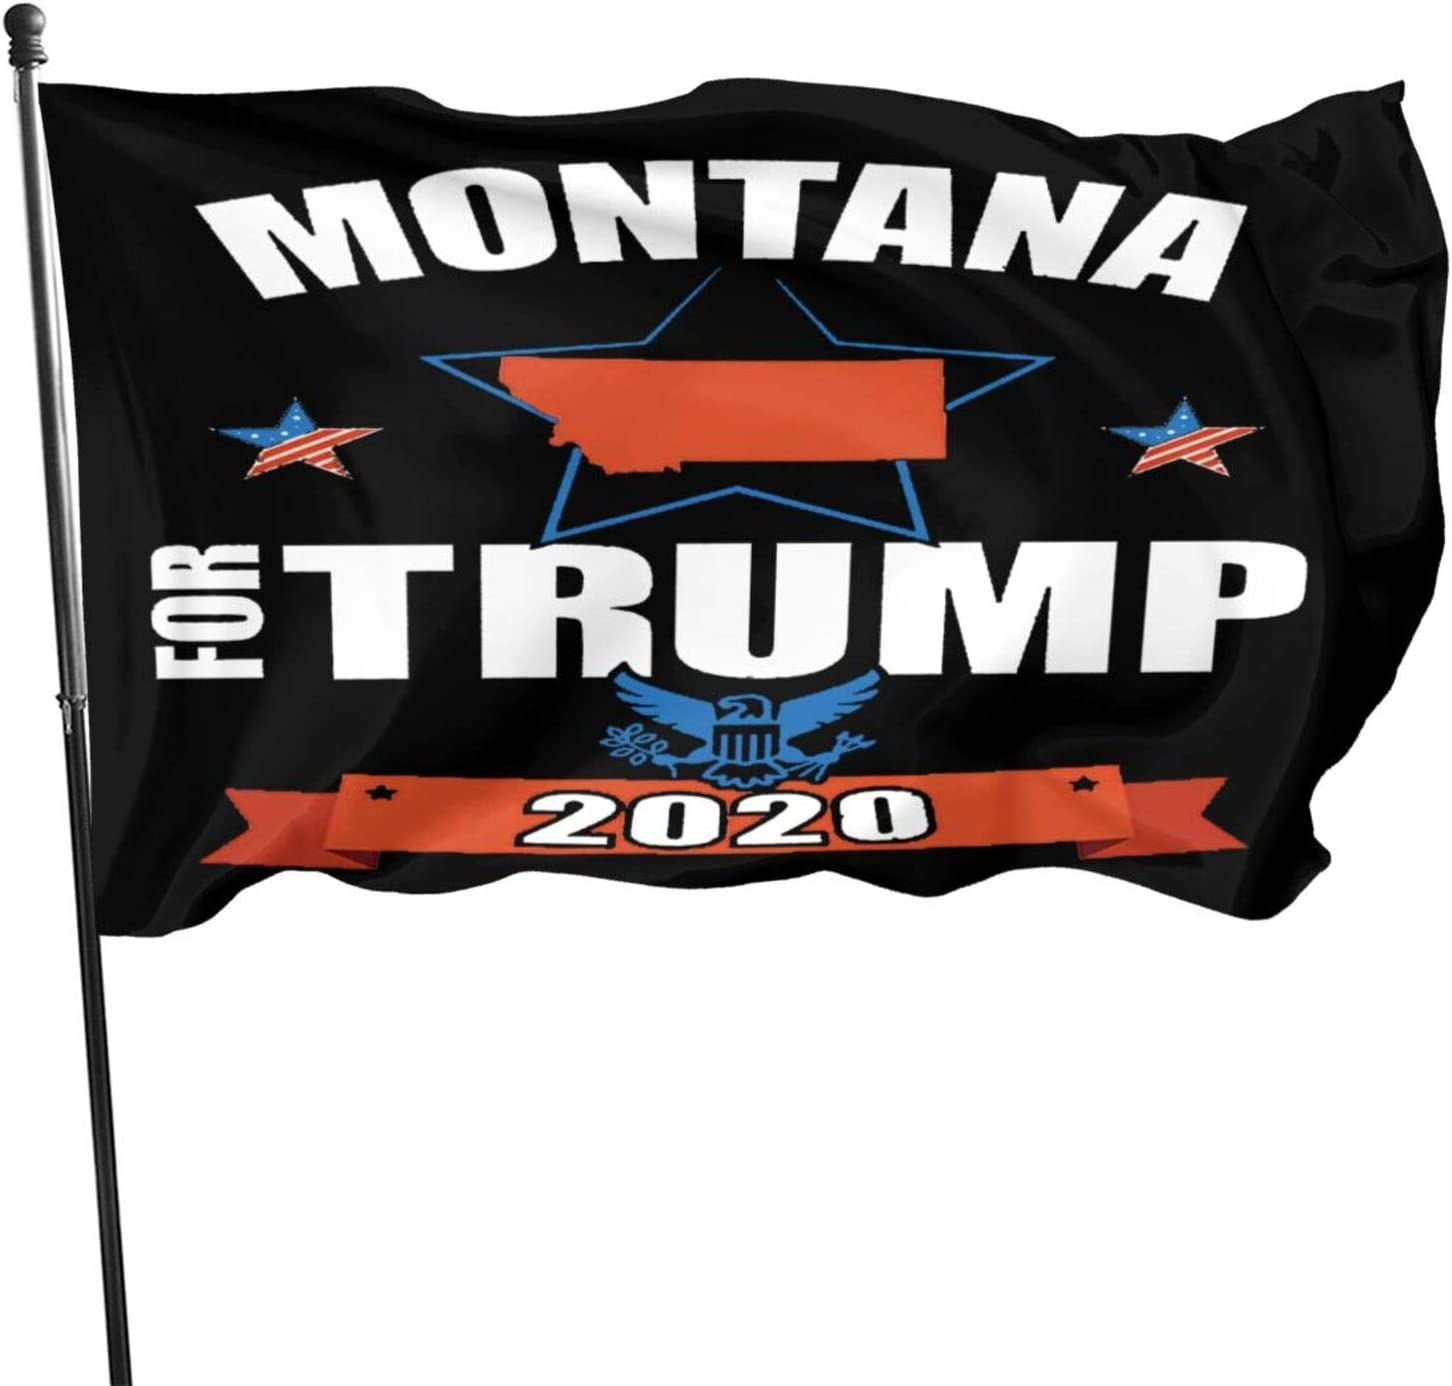 WYOMING FOR TRUMP 2020 Advertising Vinyl Banner Flag Sign ELECTION